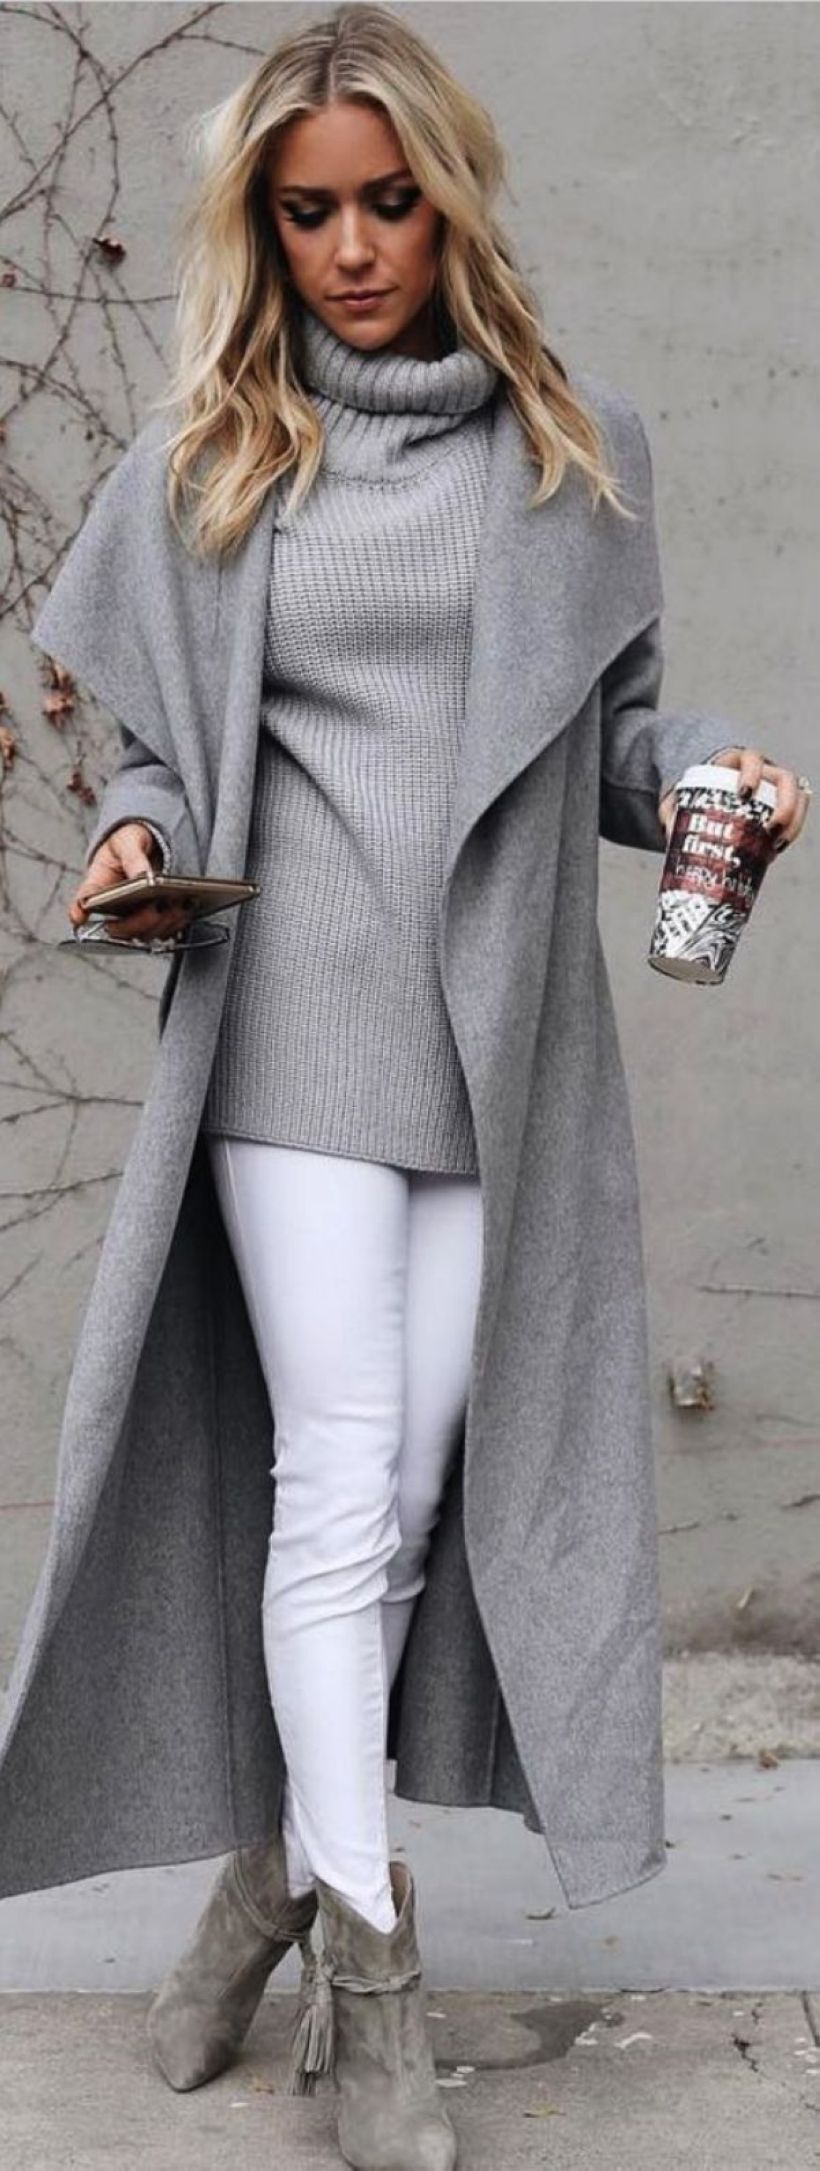 45 Most Popular Casual Outfit Ideas for Women This Year